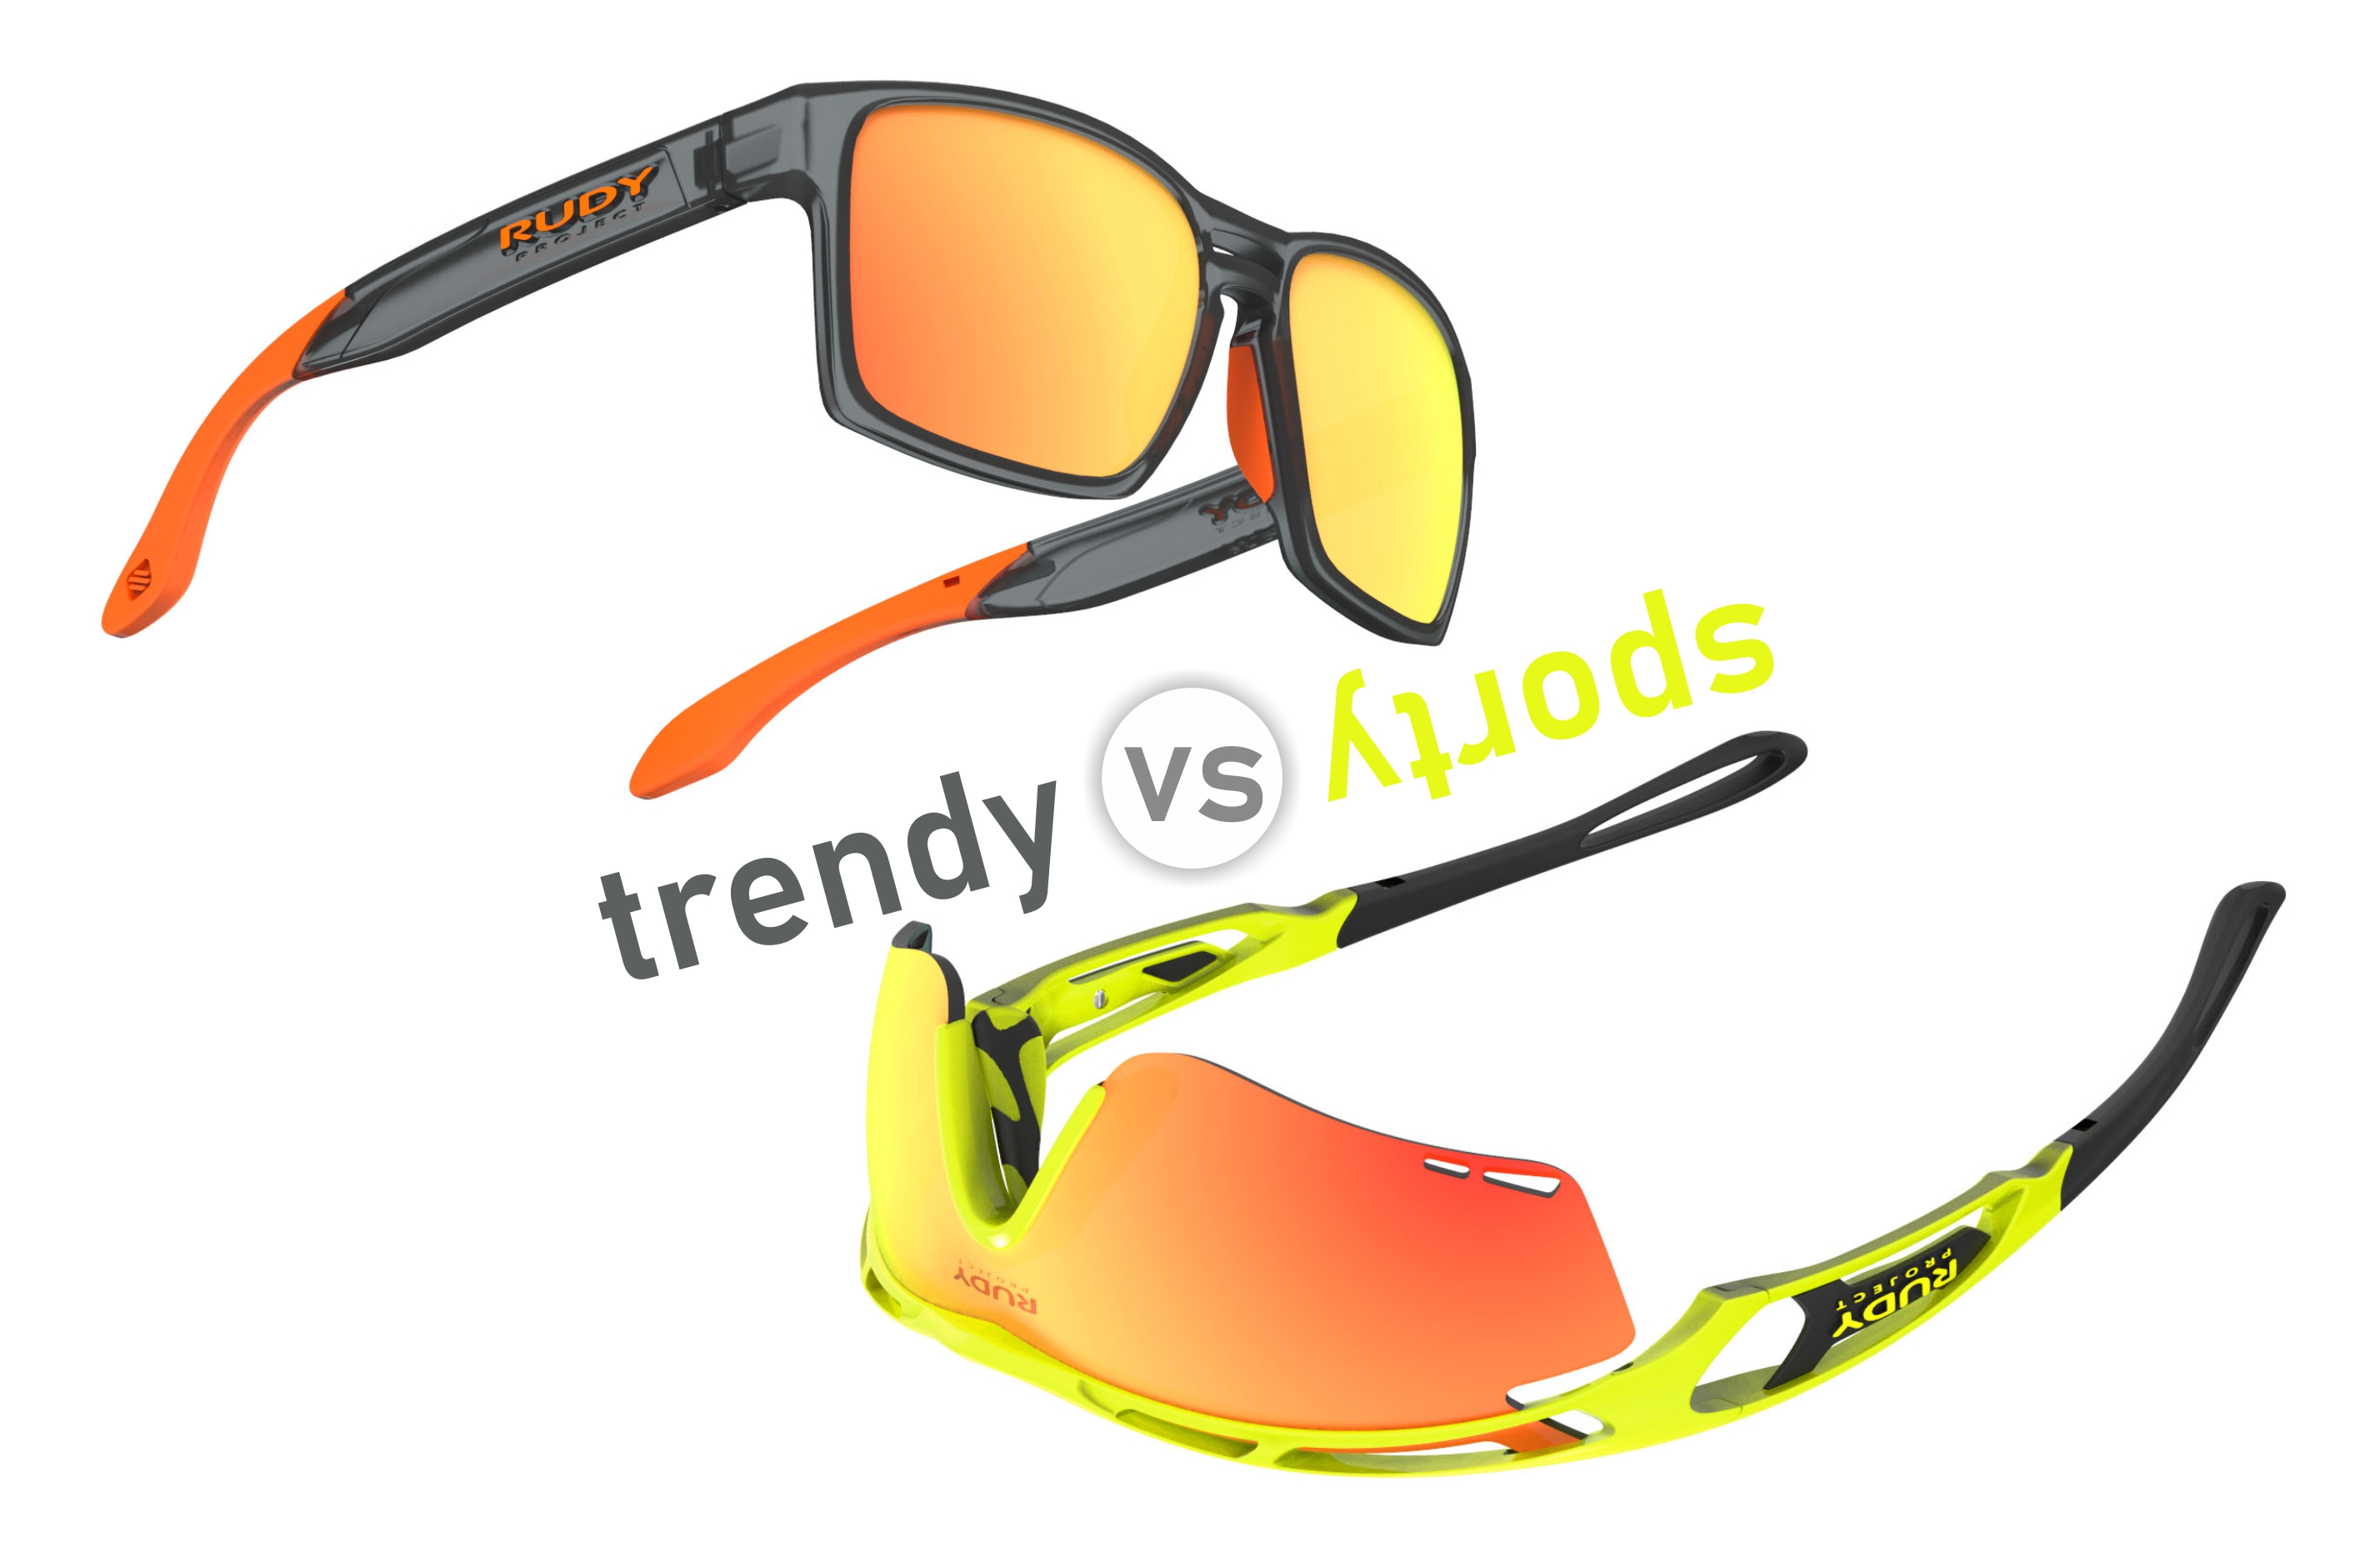 rudytrendy-vs-sporty.jpg